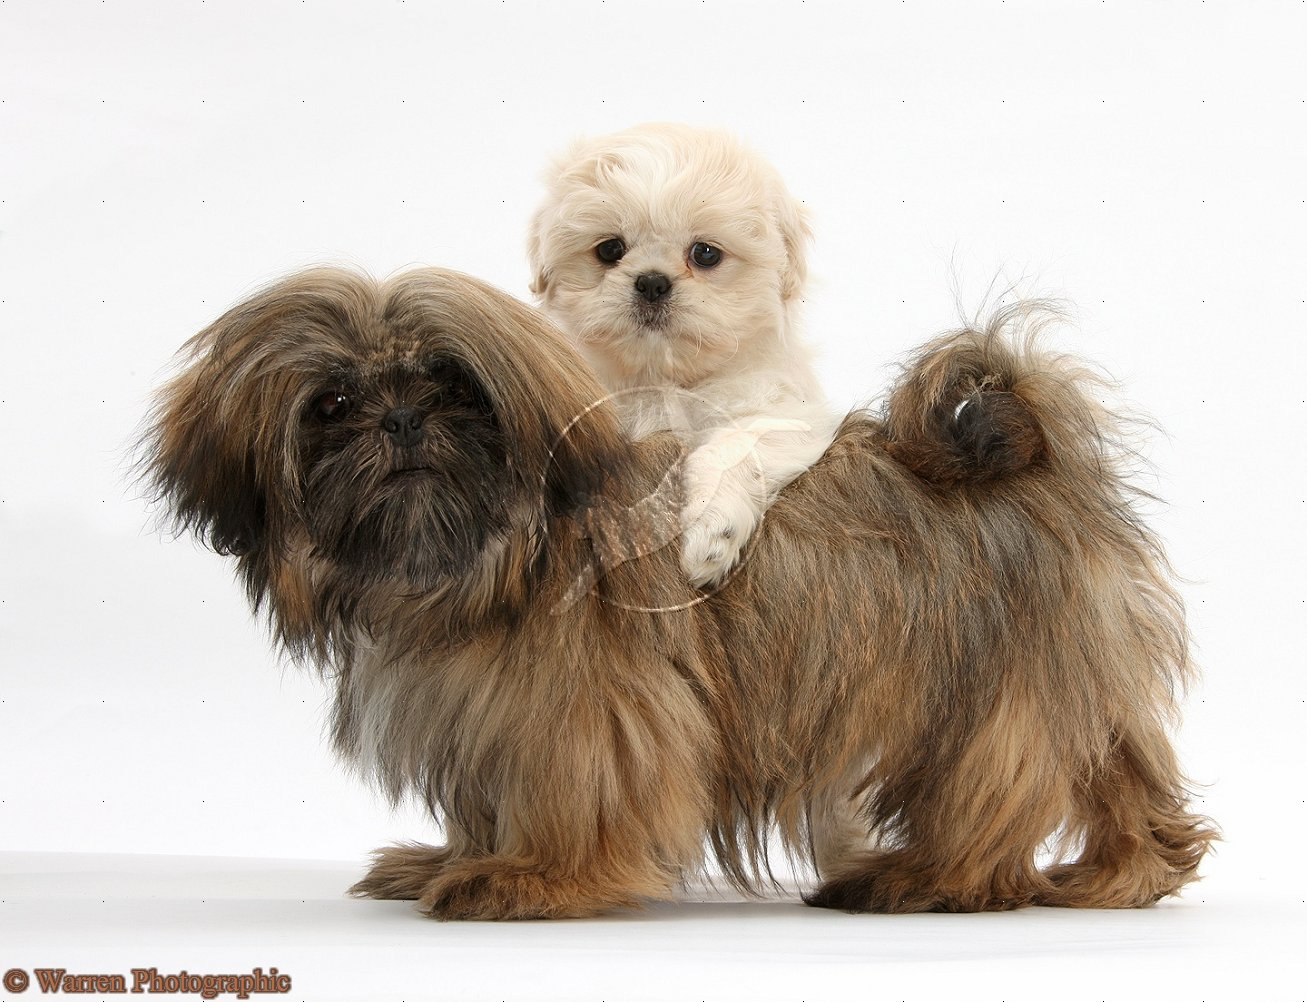 Cute Puppy Dogs: brown shih tzu puppies